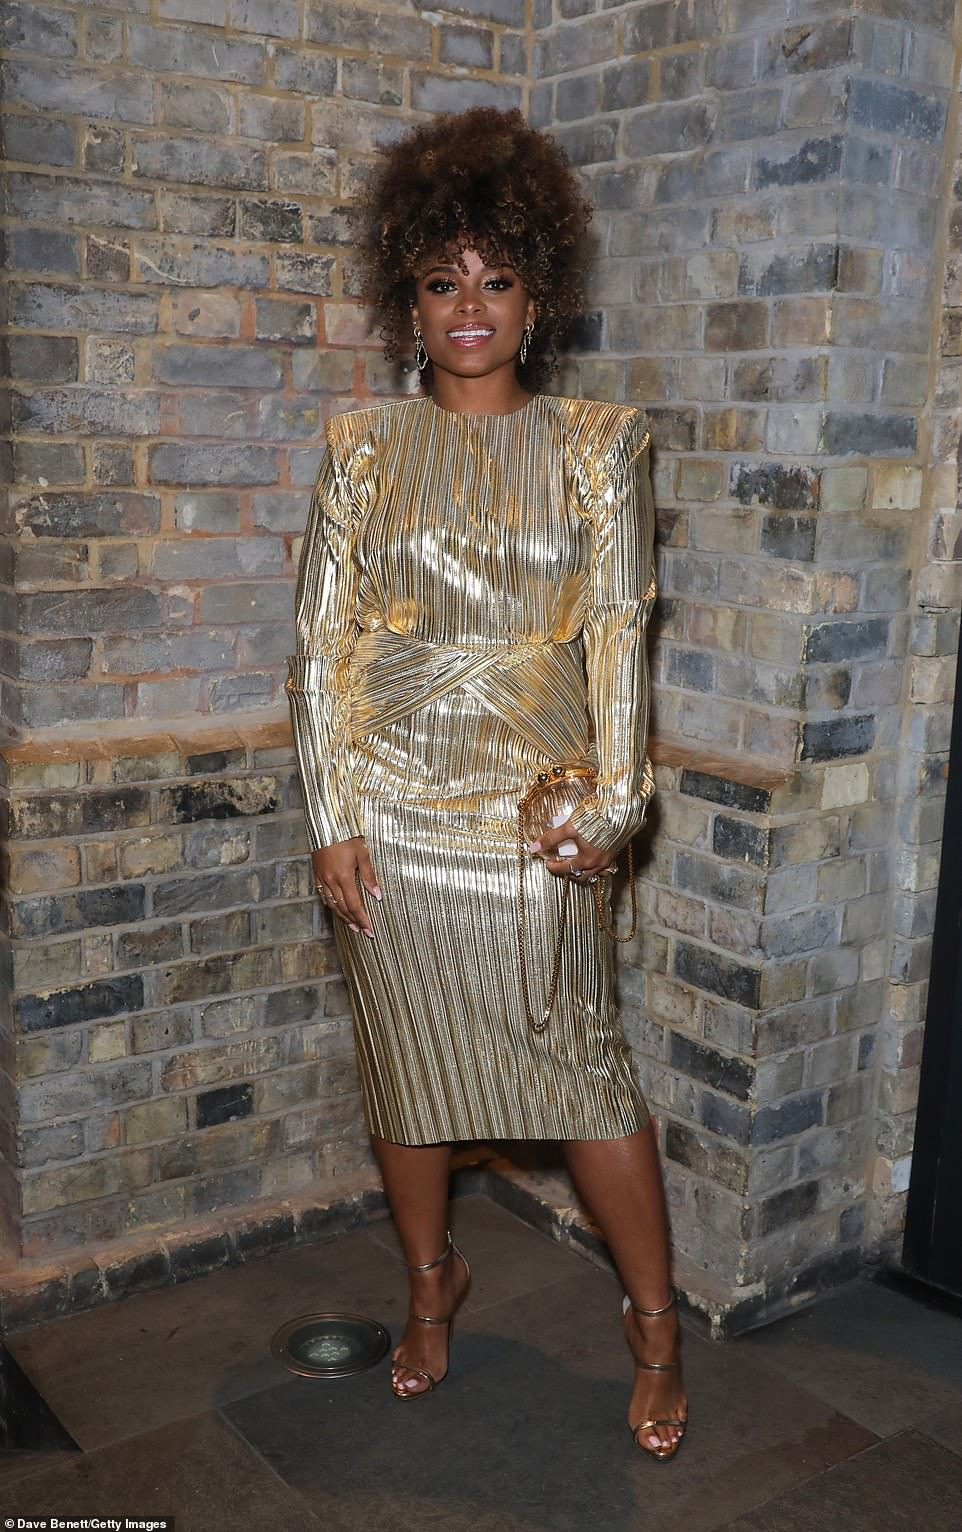 Golden girl: Singer Fleur East wowed in a gold midi dress as she attended the event